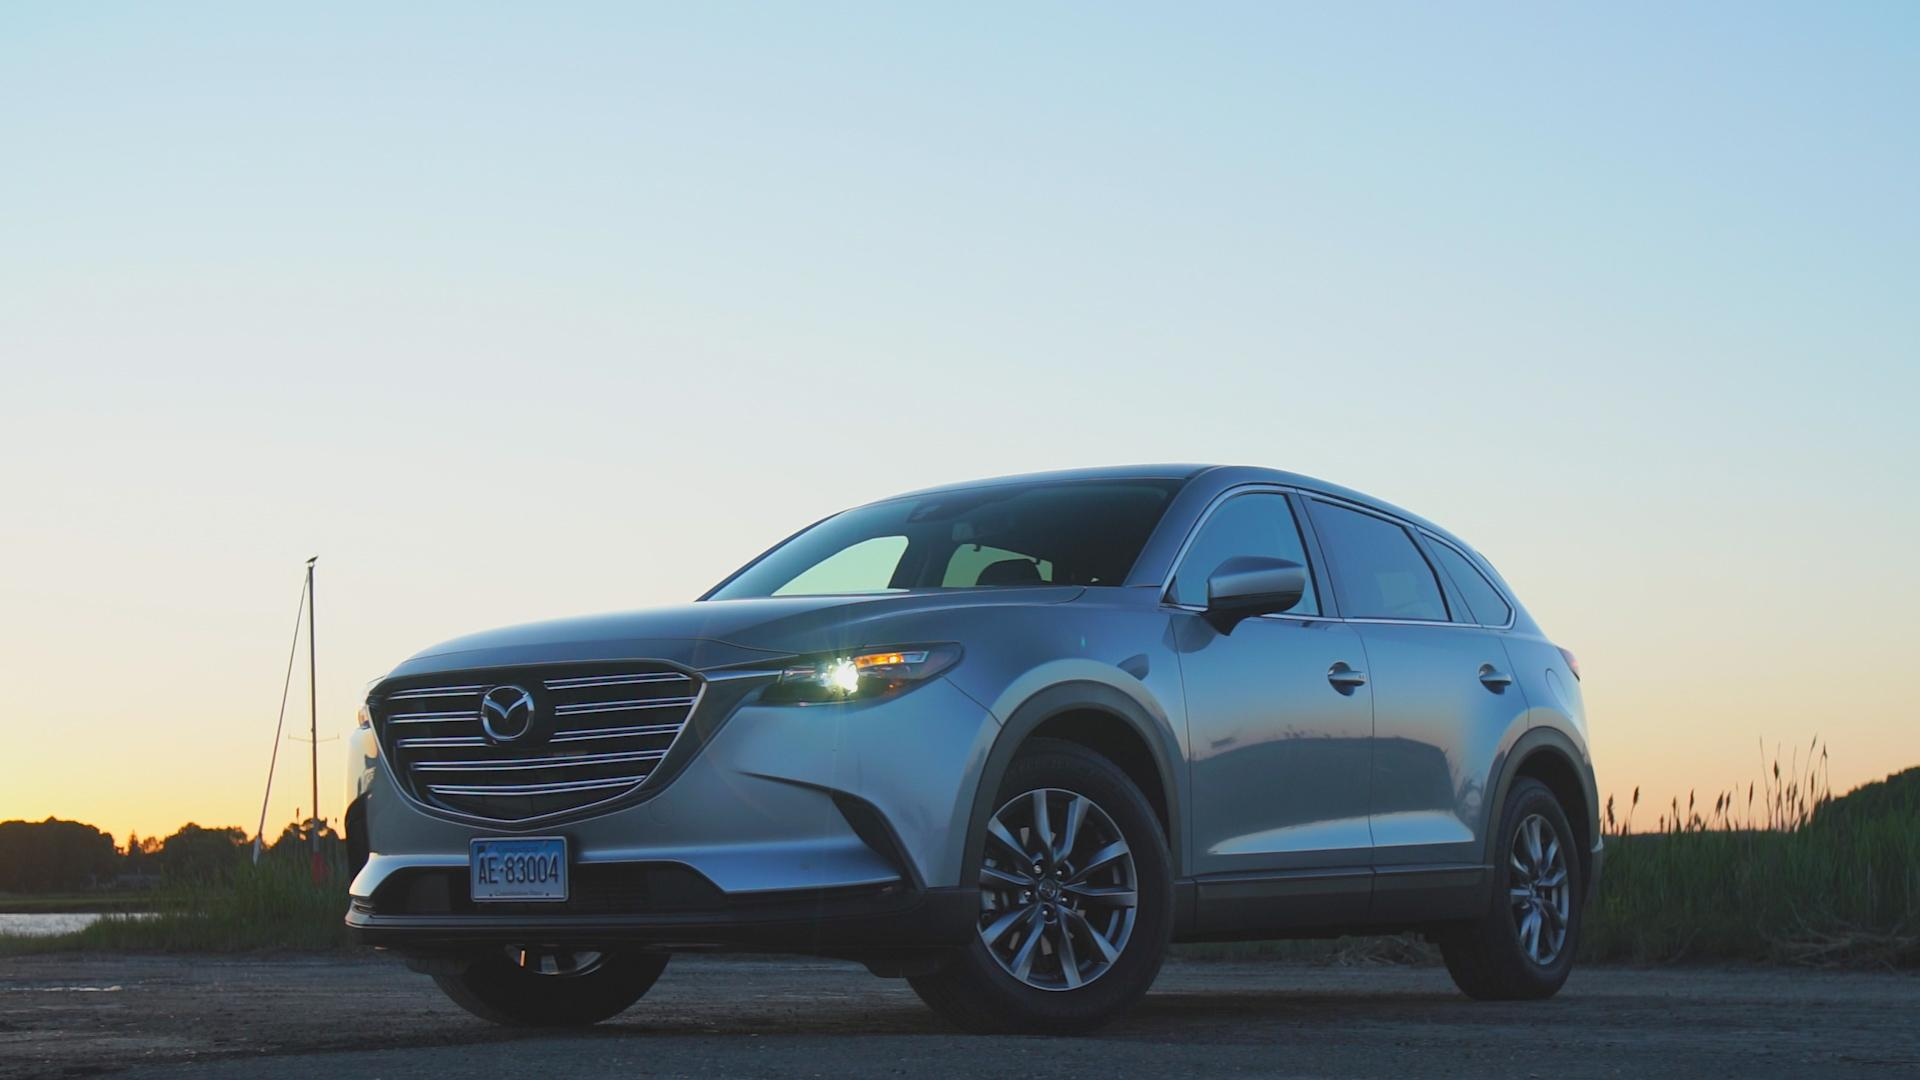 Talking Cars Mazda Cx 9 Tesla And Viewer Questions